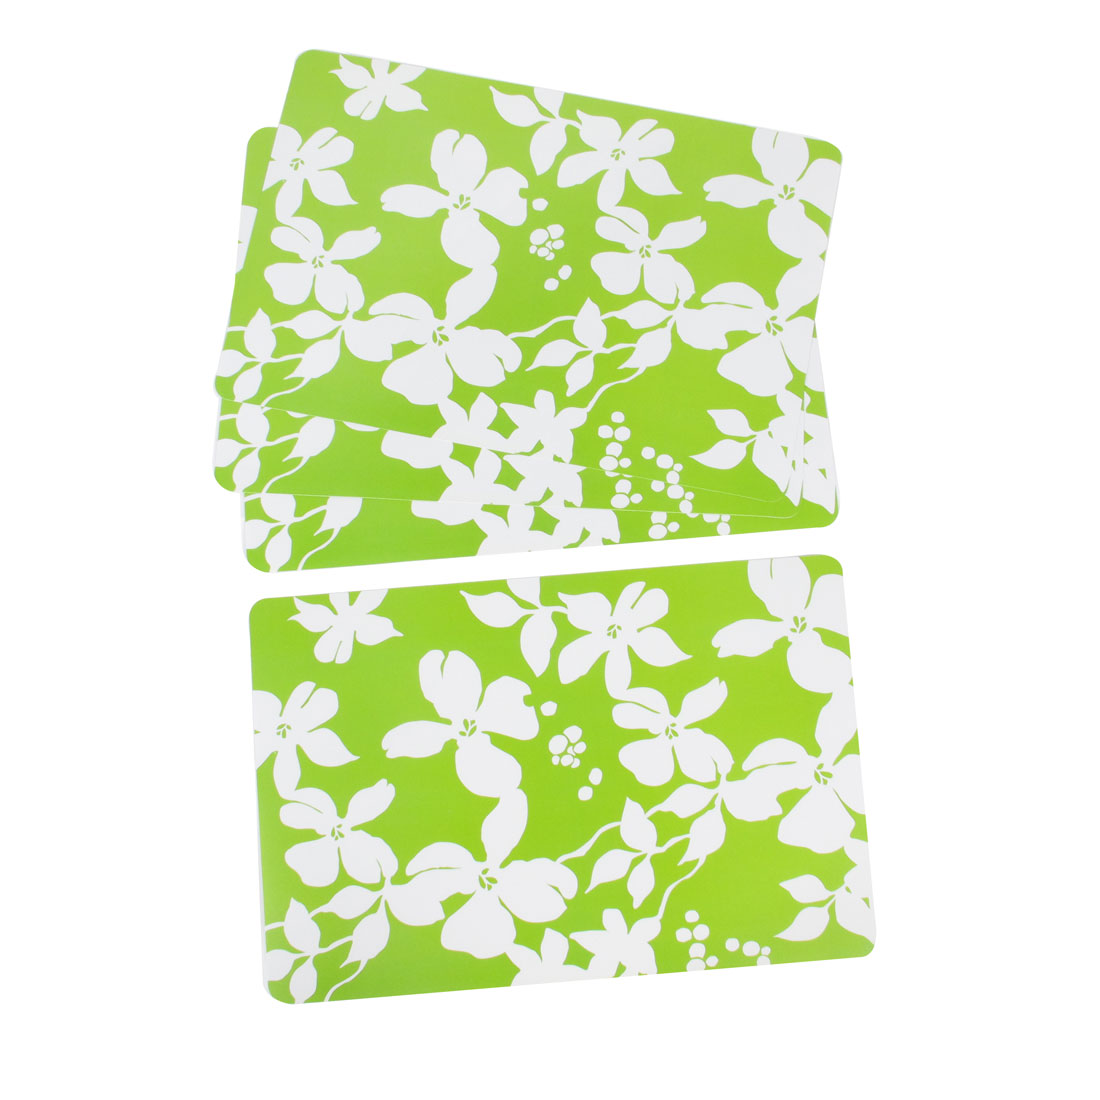 4 Pcs White Flowers Print Plastic Rectangle Table Pot Mug Holder Mat Green